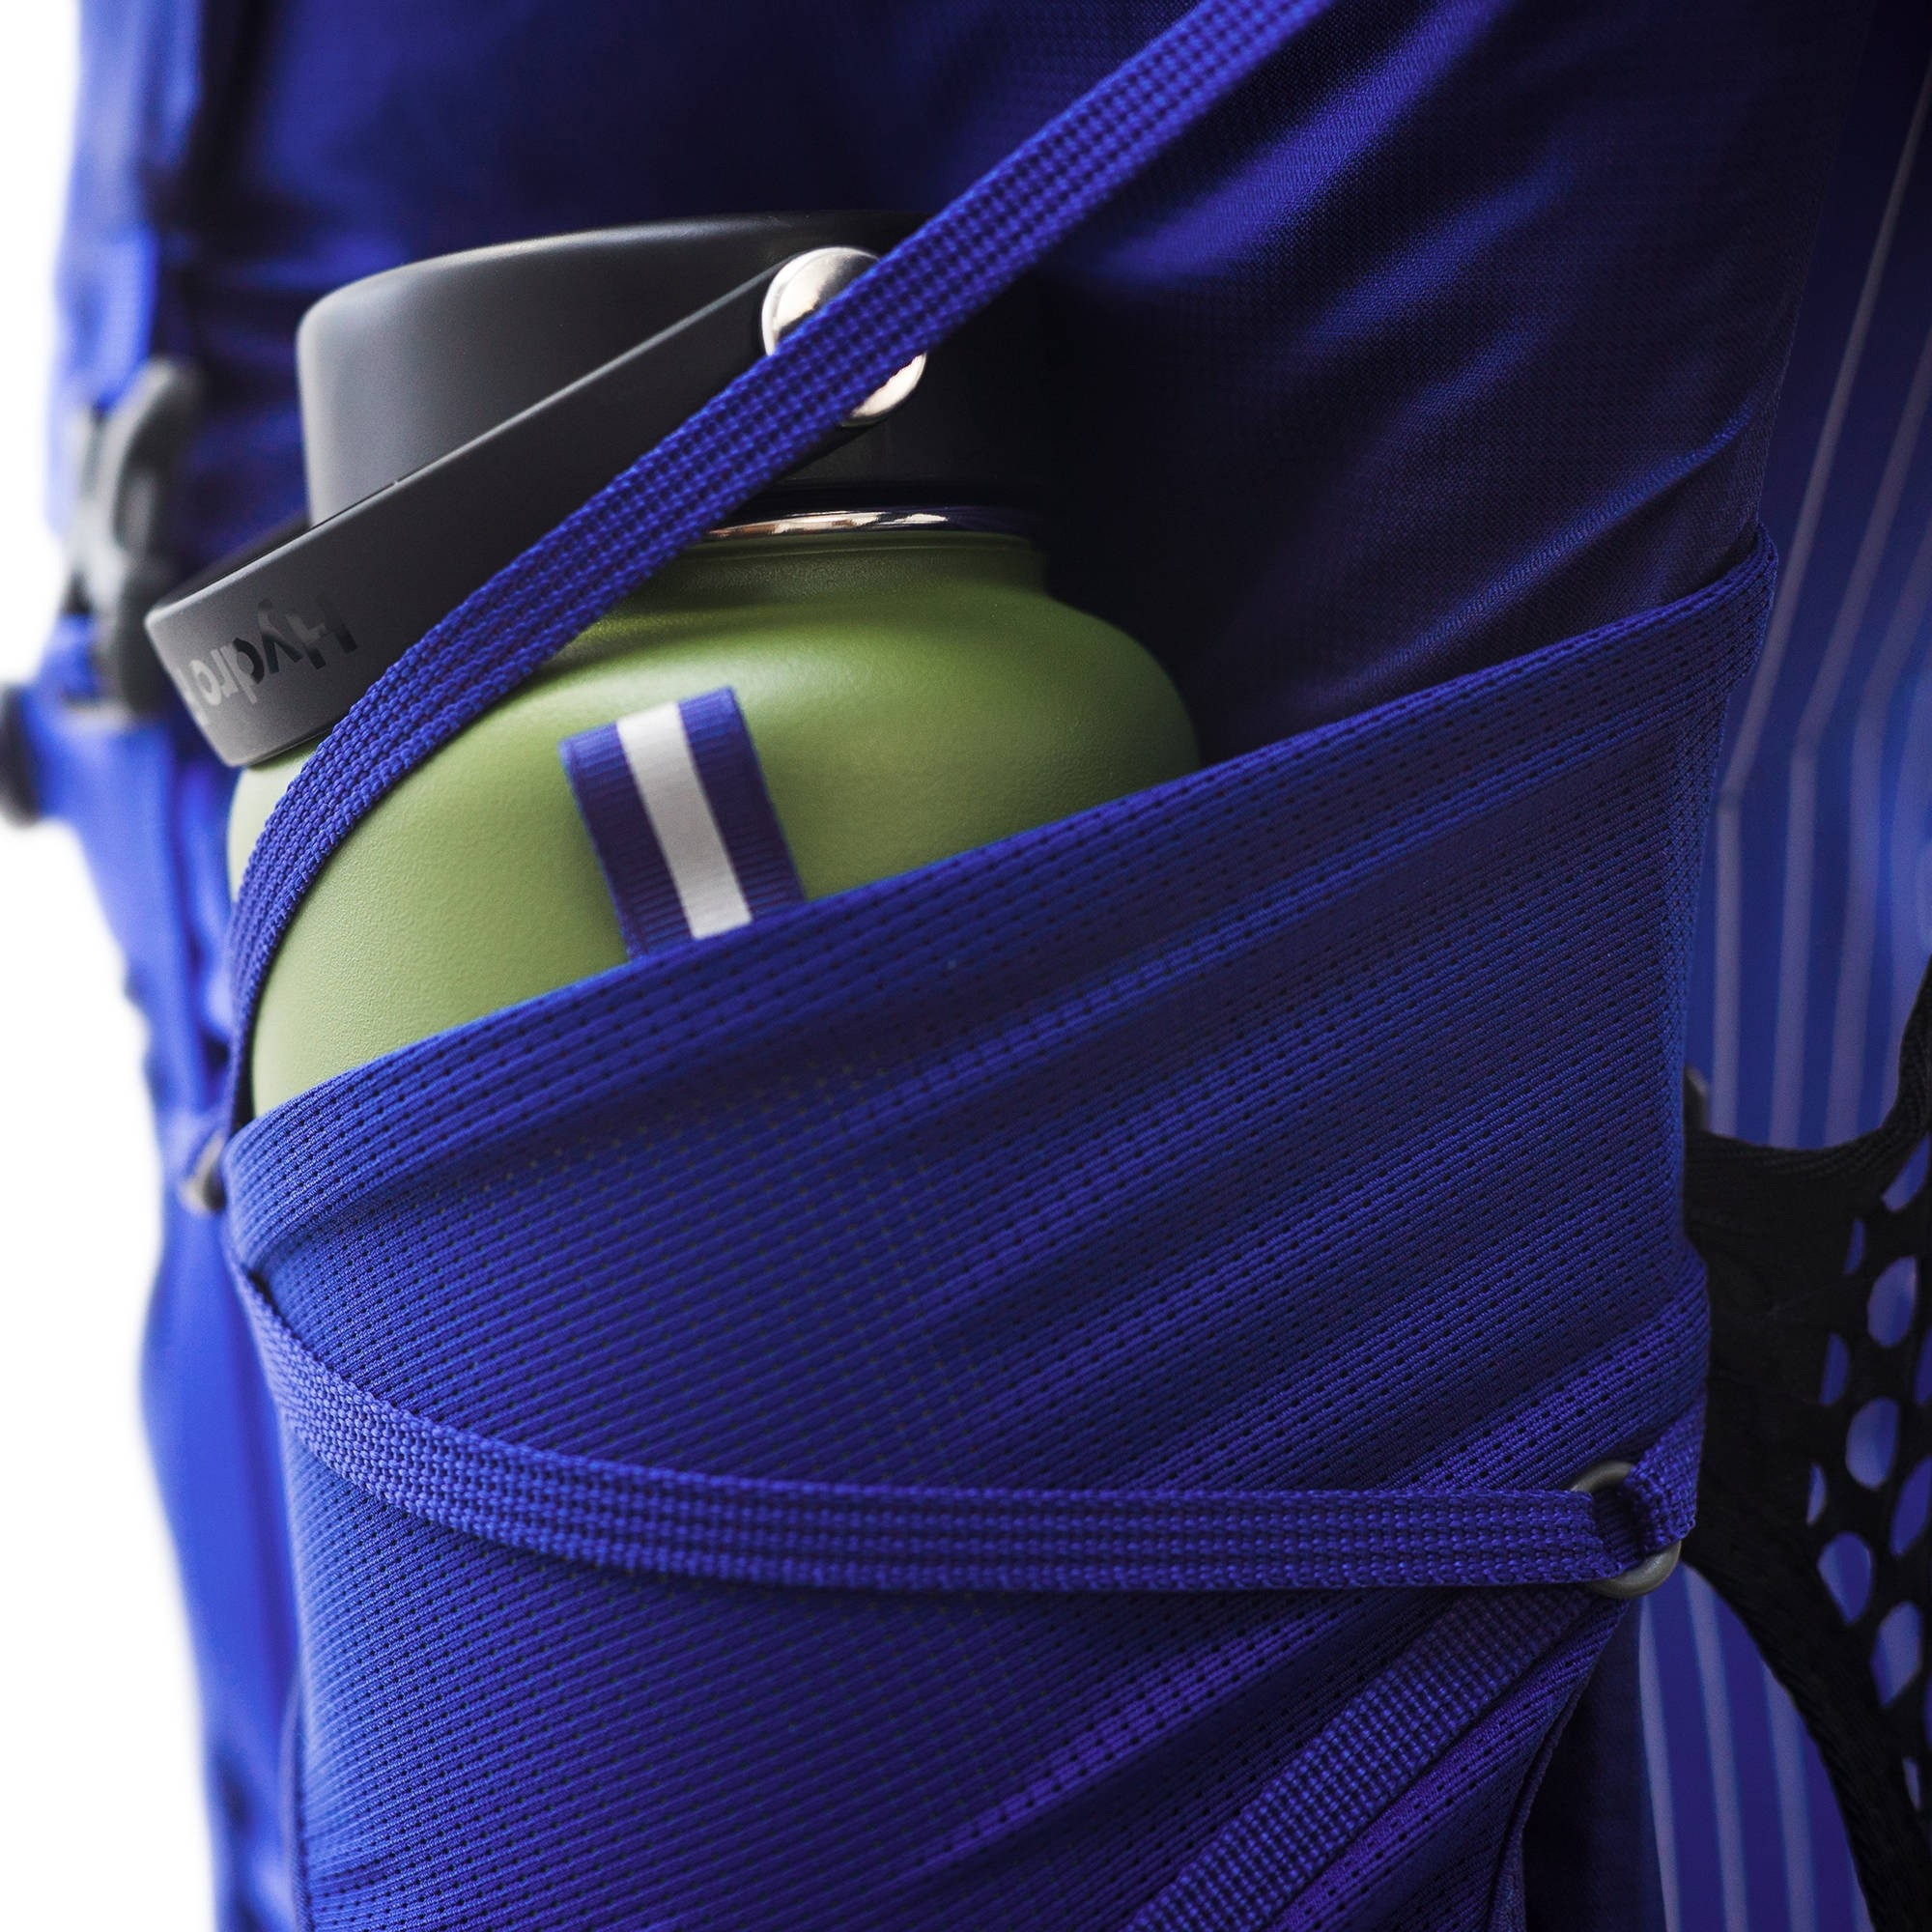 Osprey-Eja-Dual-access-stretch-mesh-side-pockets-with-InsideOut-compression-straps